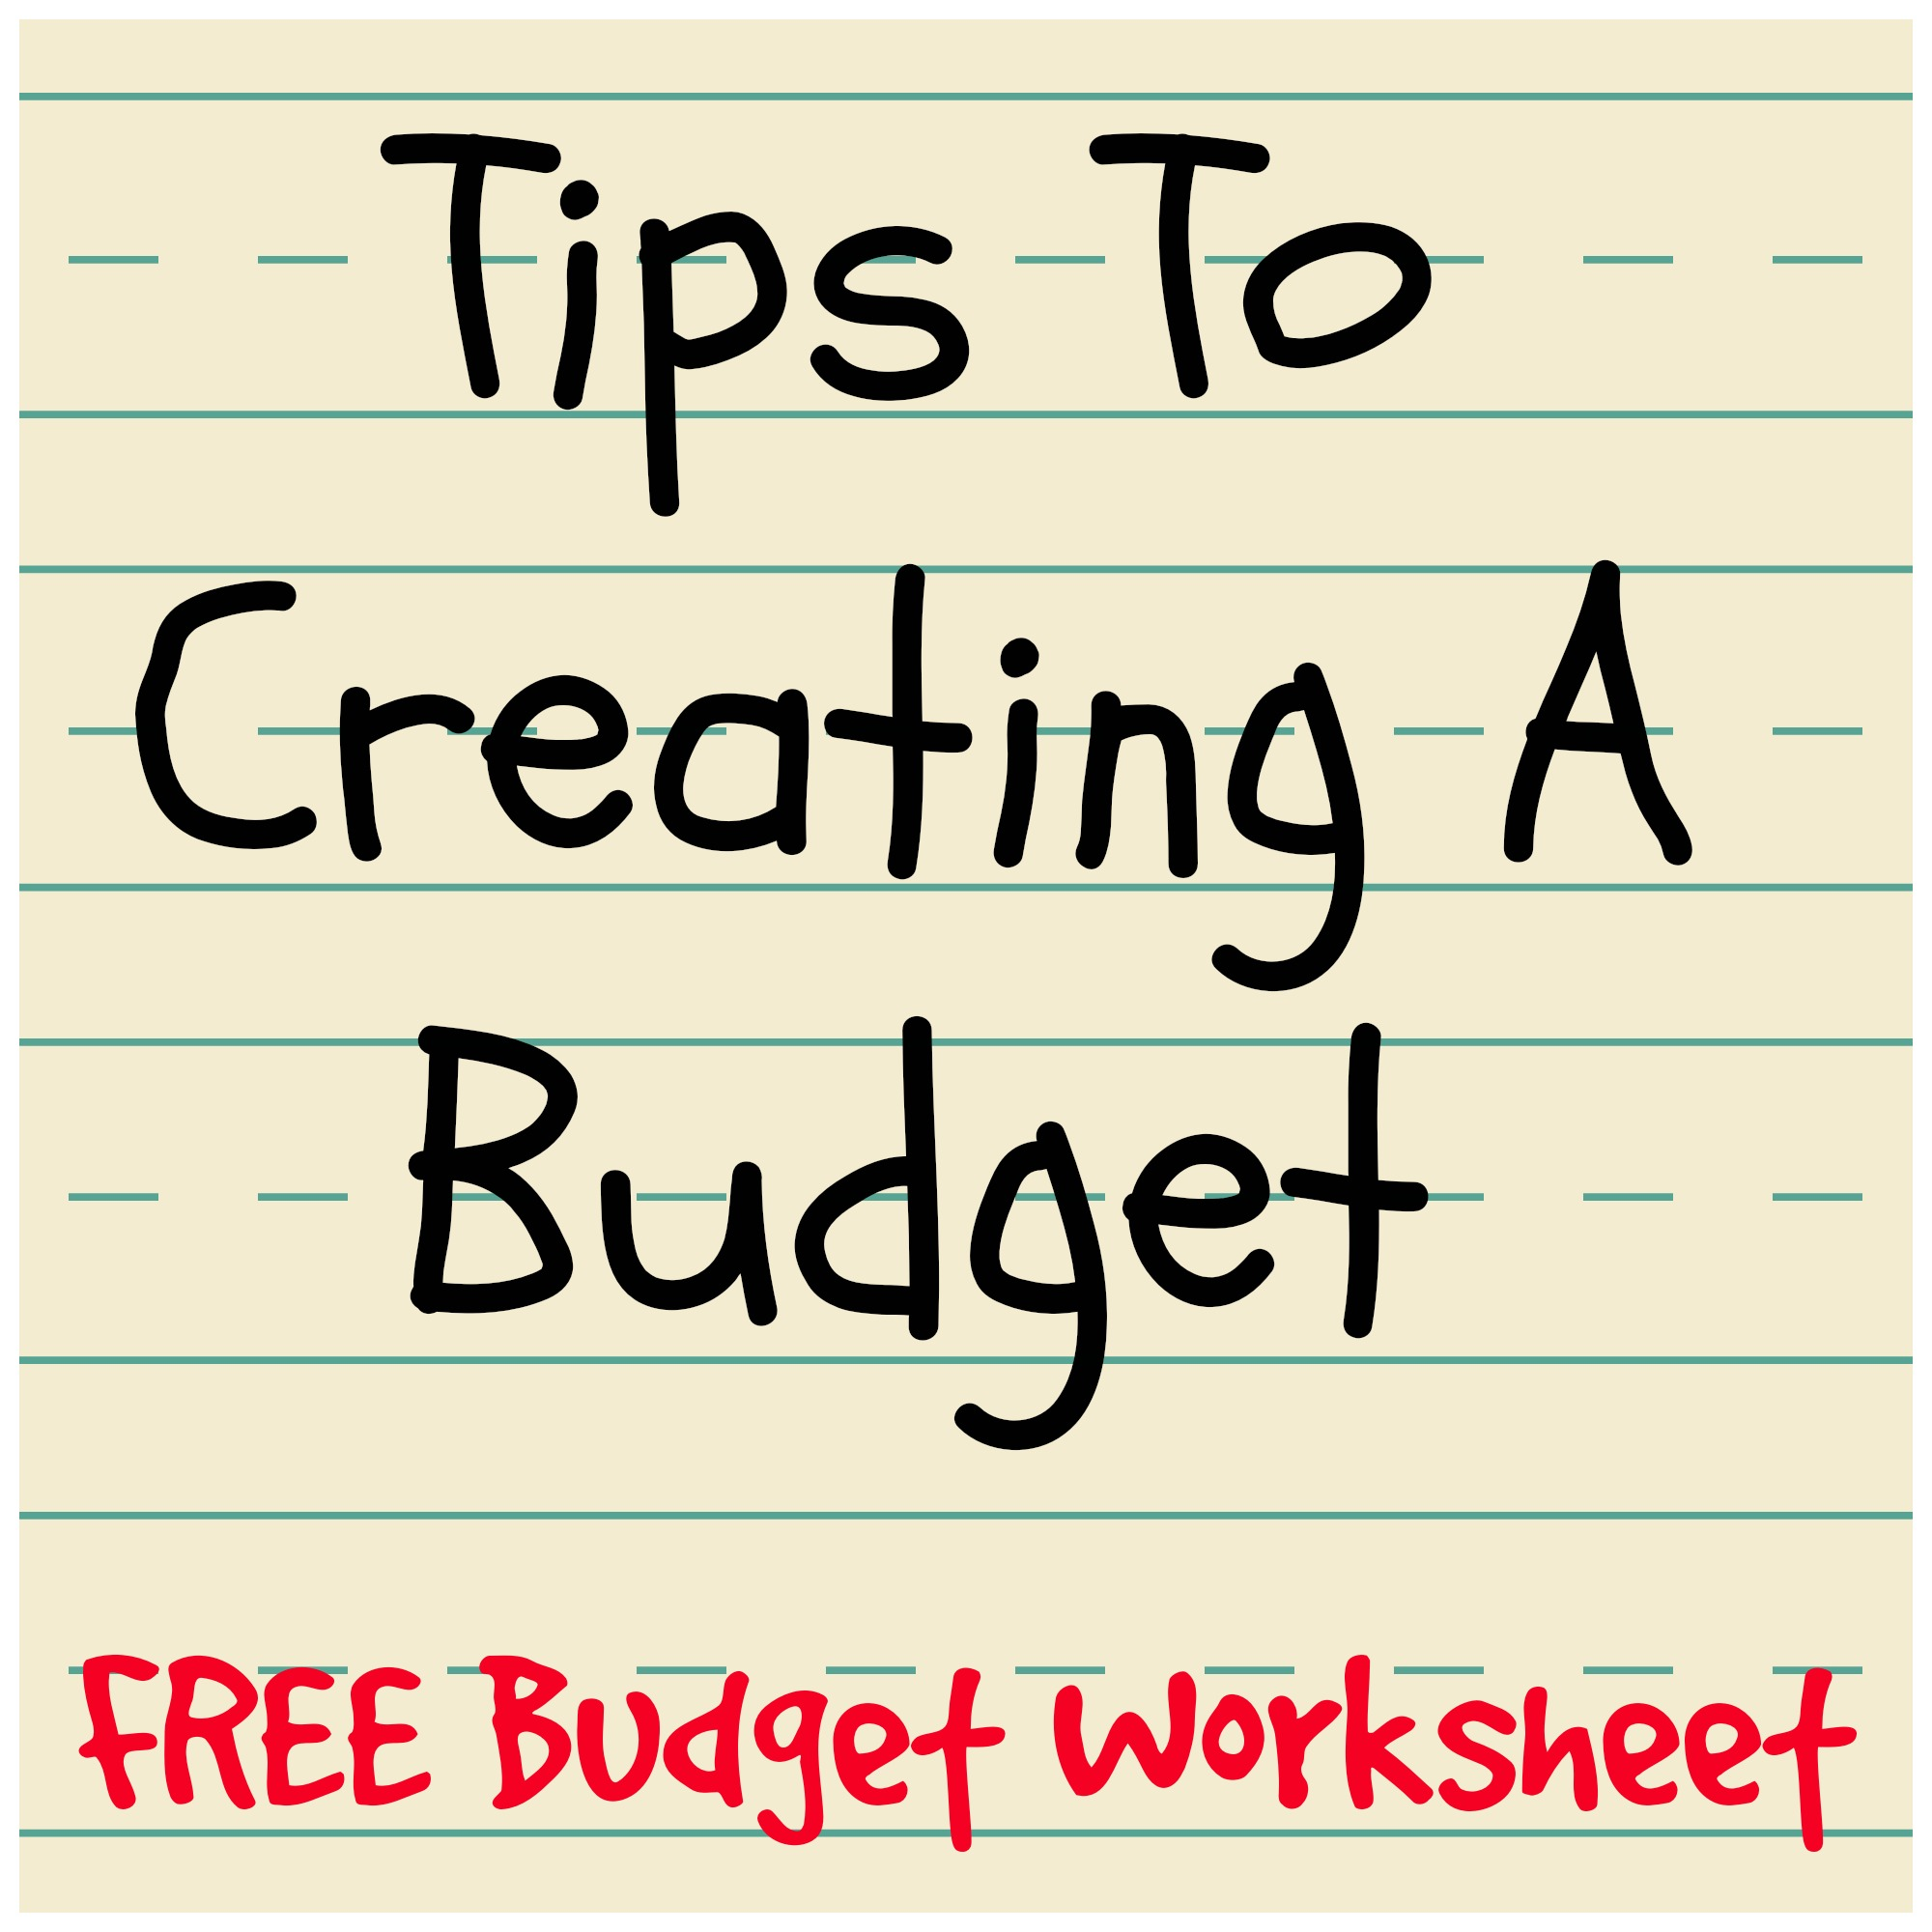 tips to creating a budget with free budget worksheet